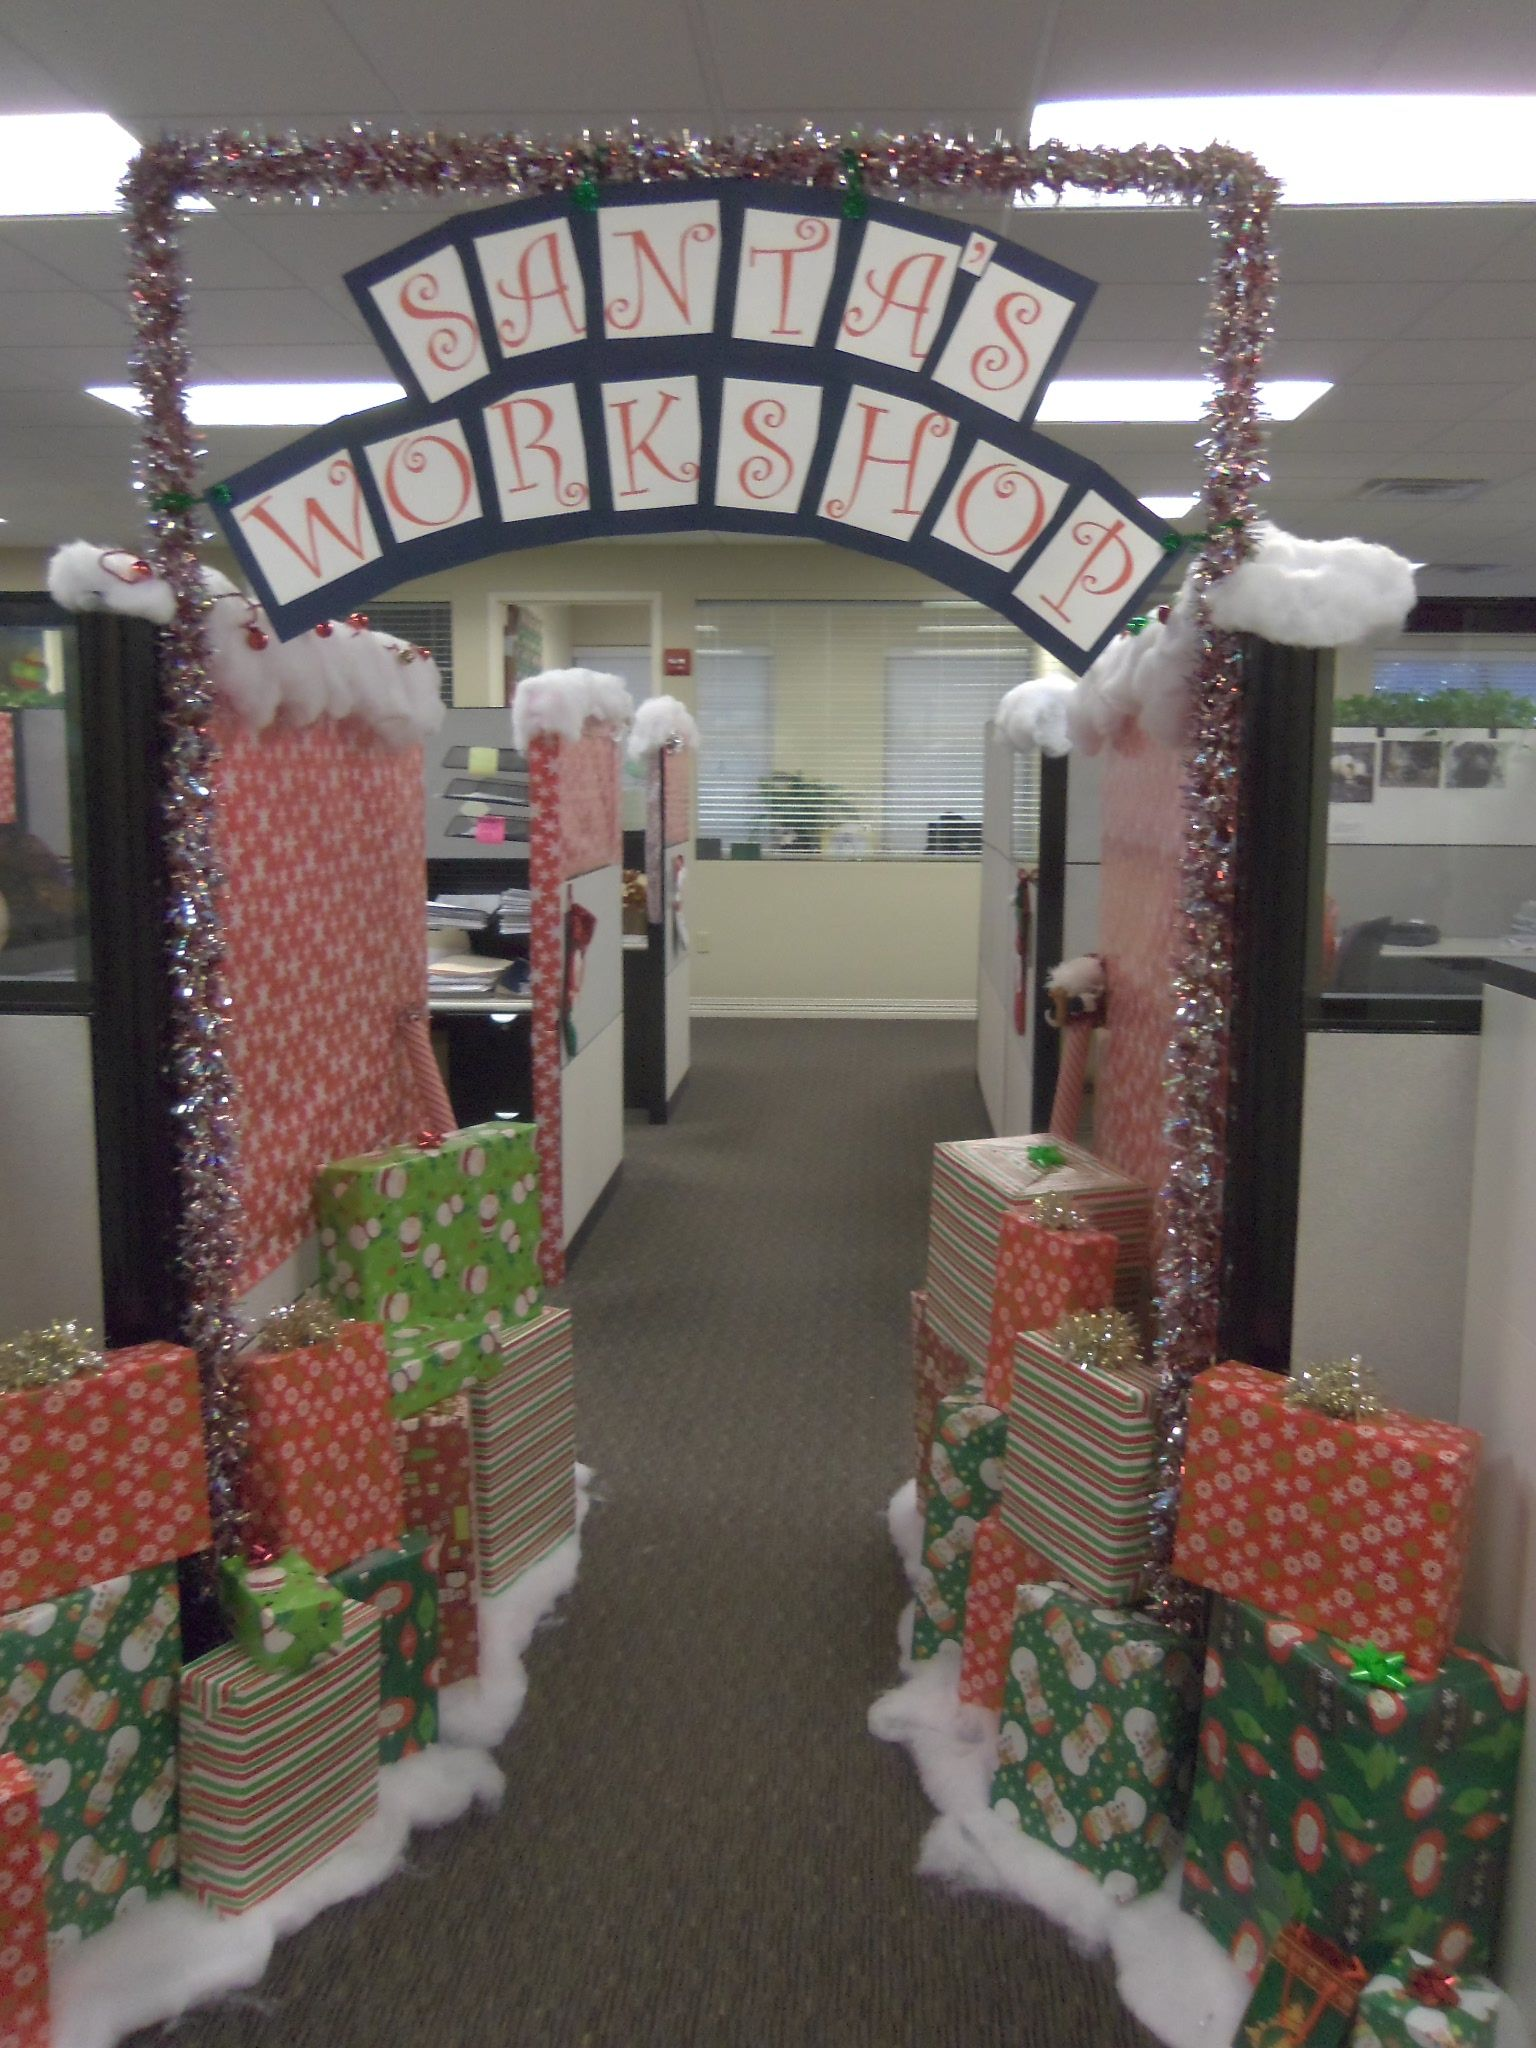 christmas decorations can boost morale at the office leland management embraces the season and encourages the holiday spirit - Office Christmas Decorating Themes